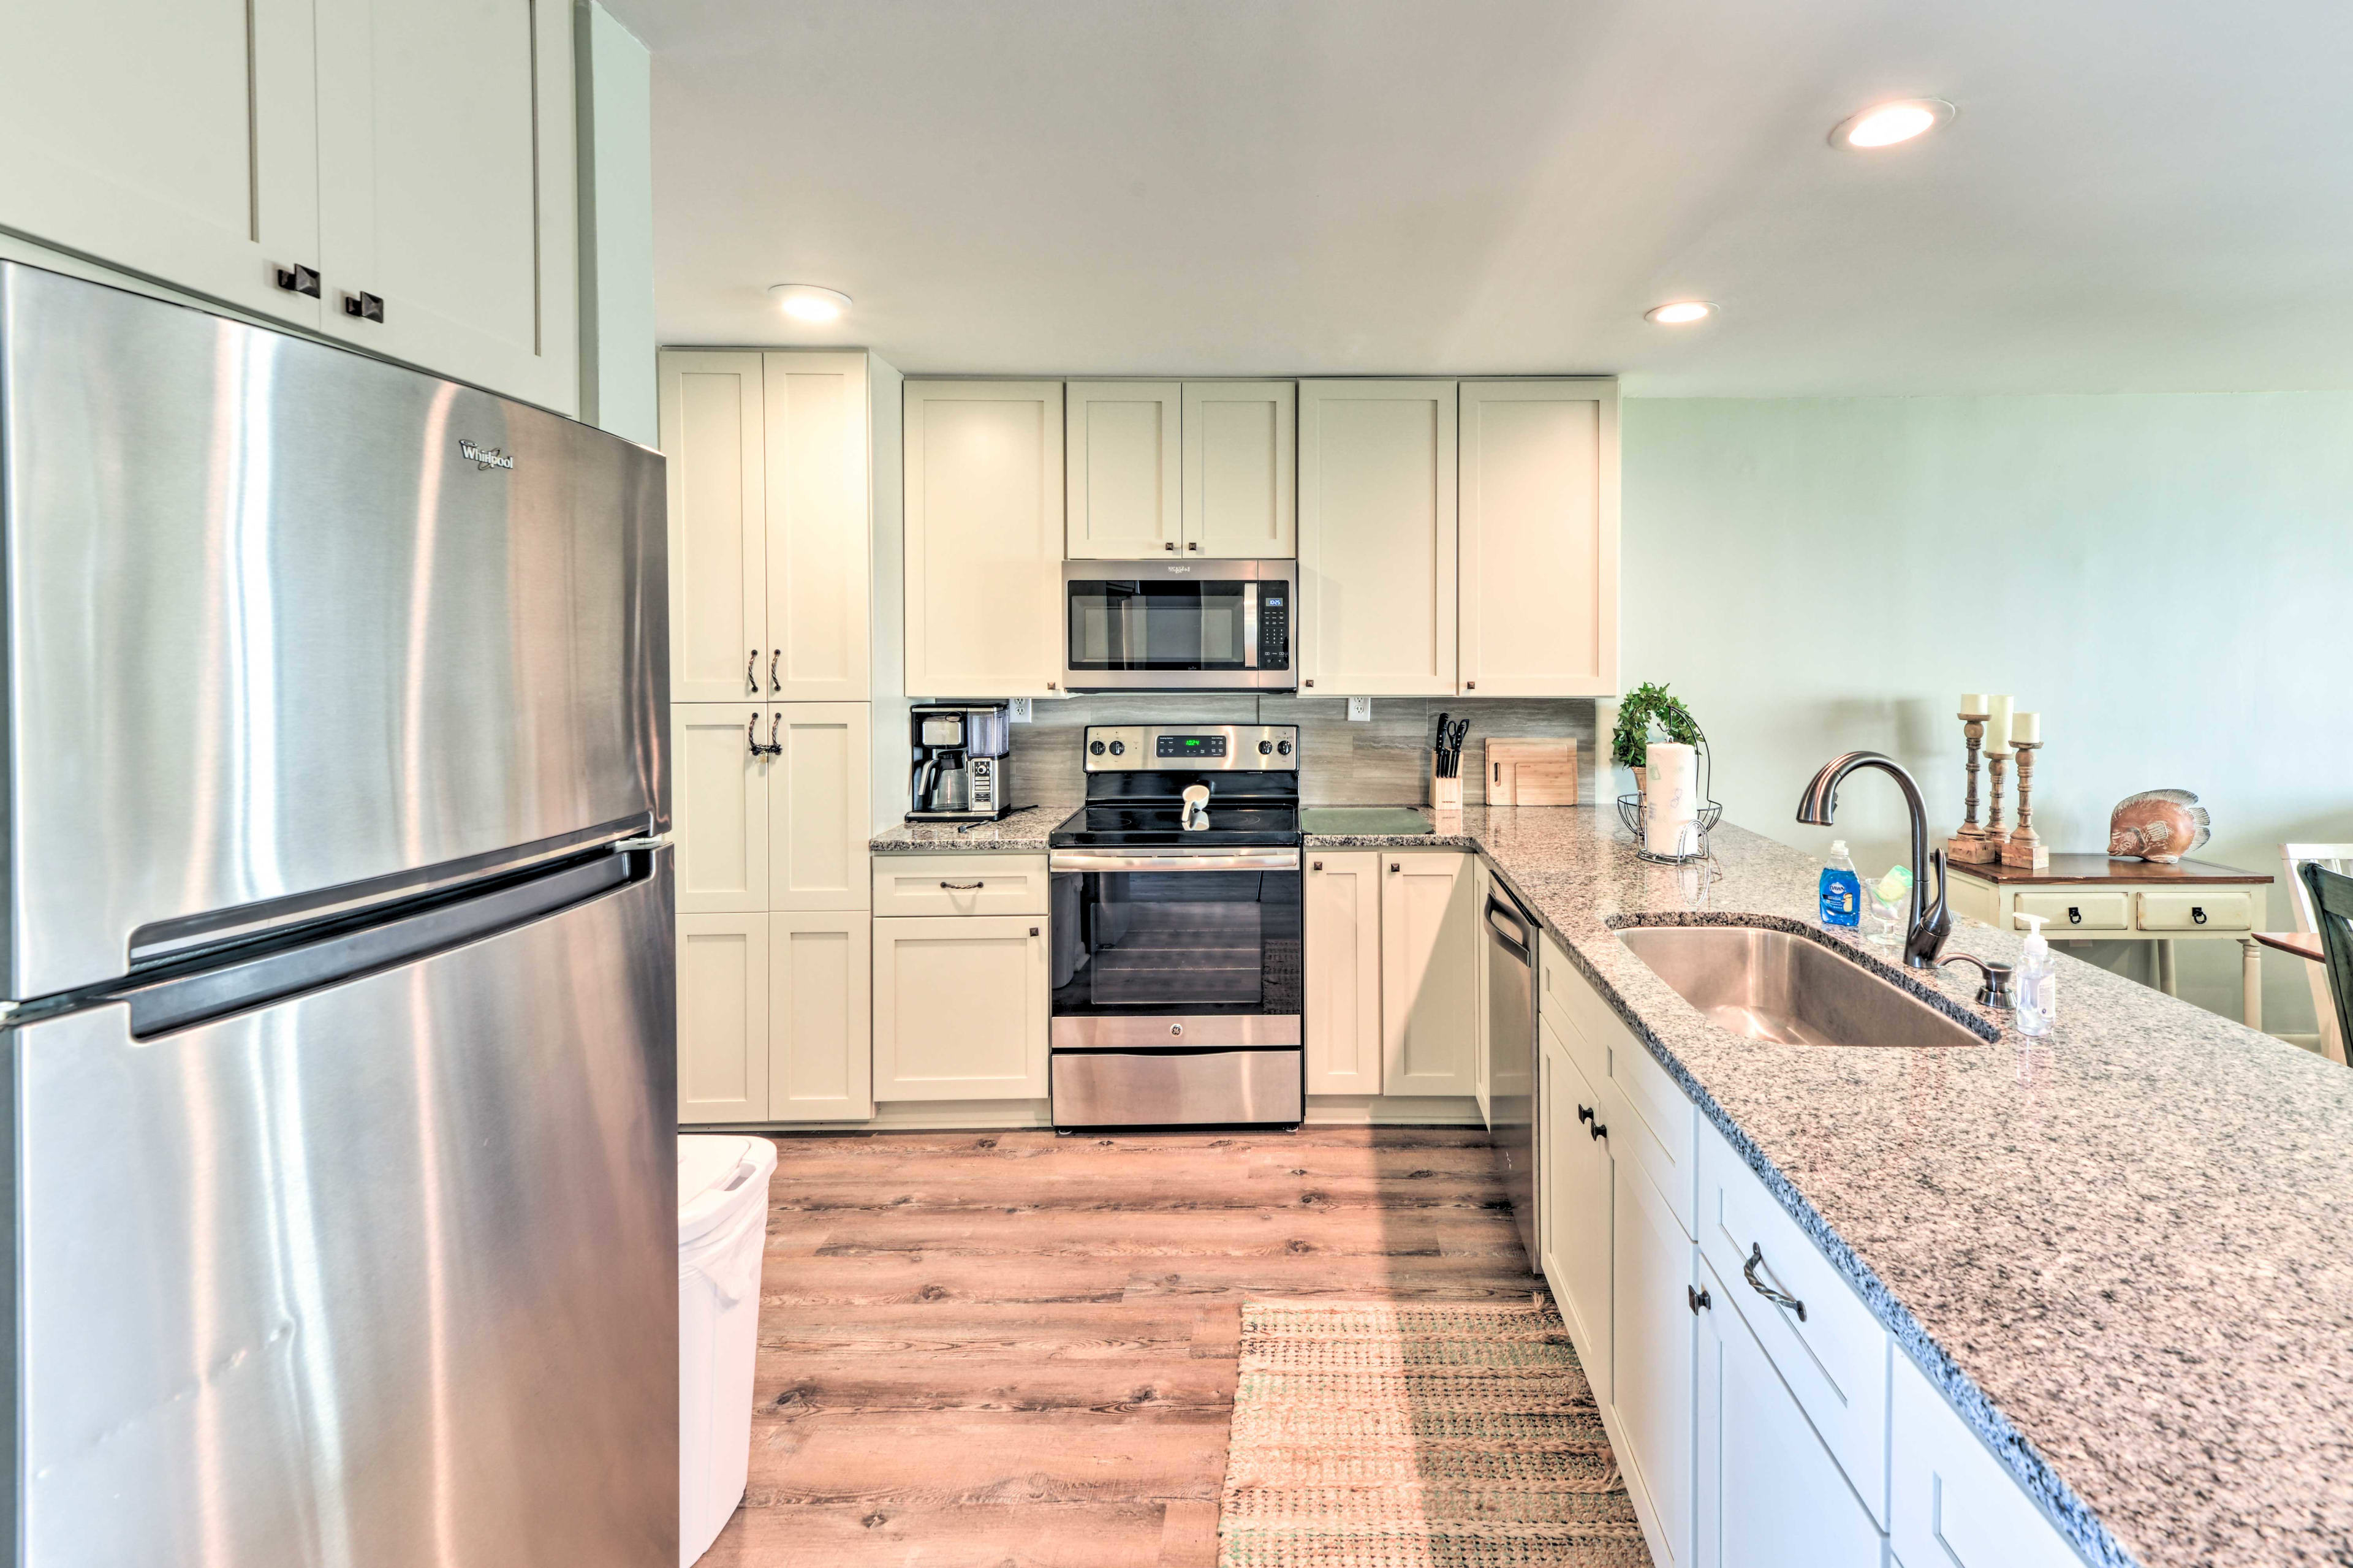 Utilize stainless steel appliances and granite countertops as you cook!